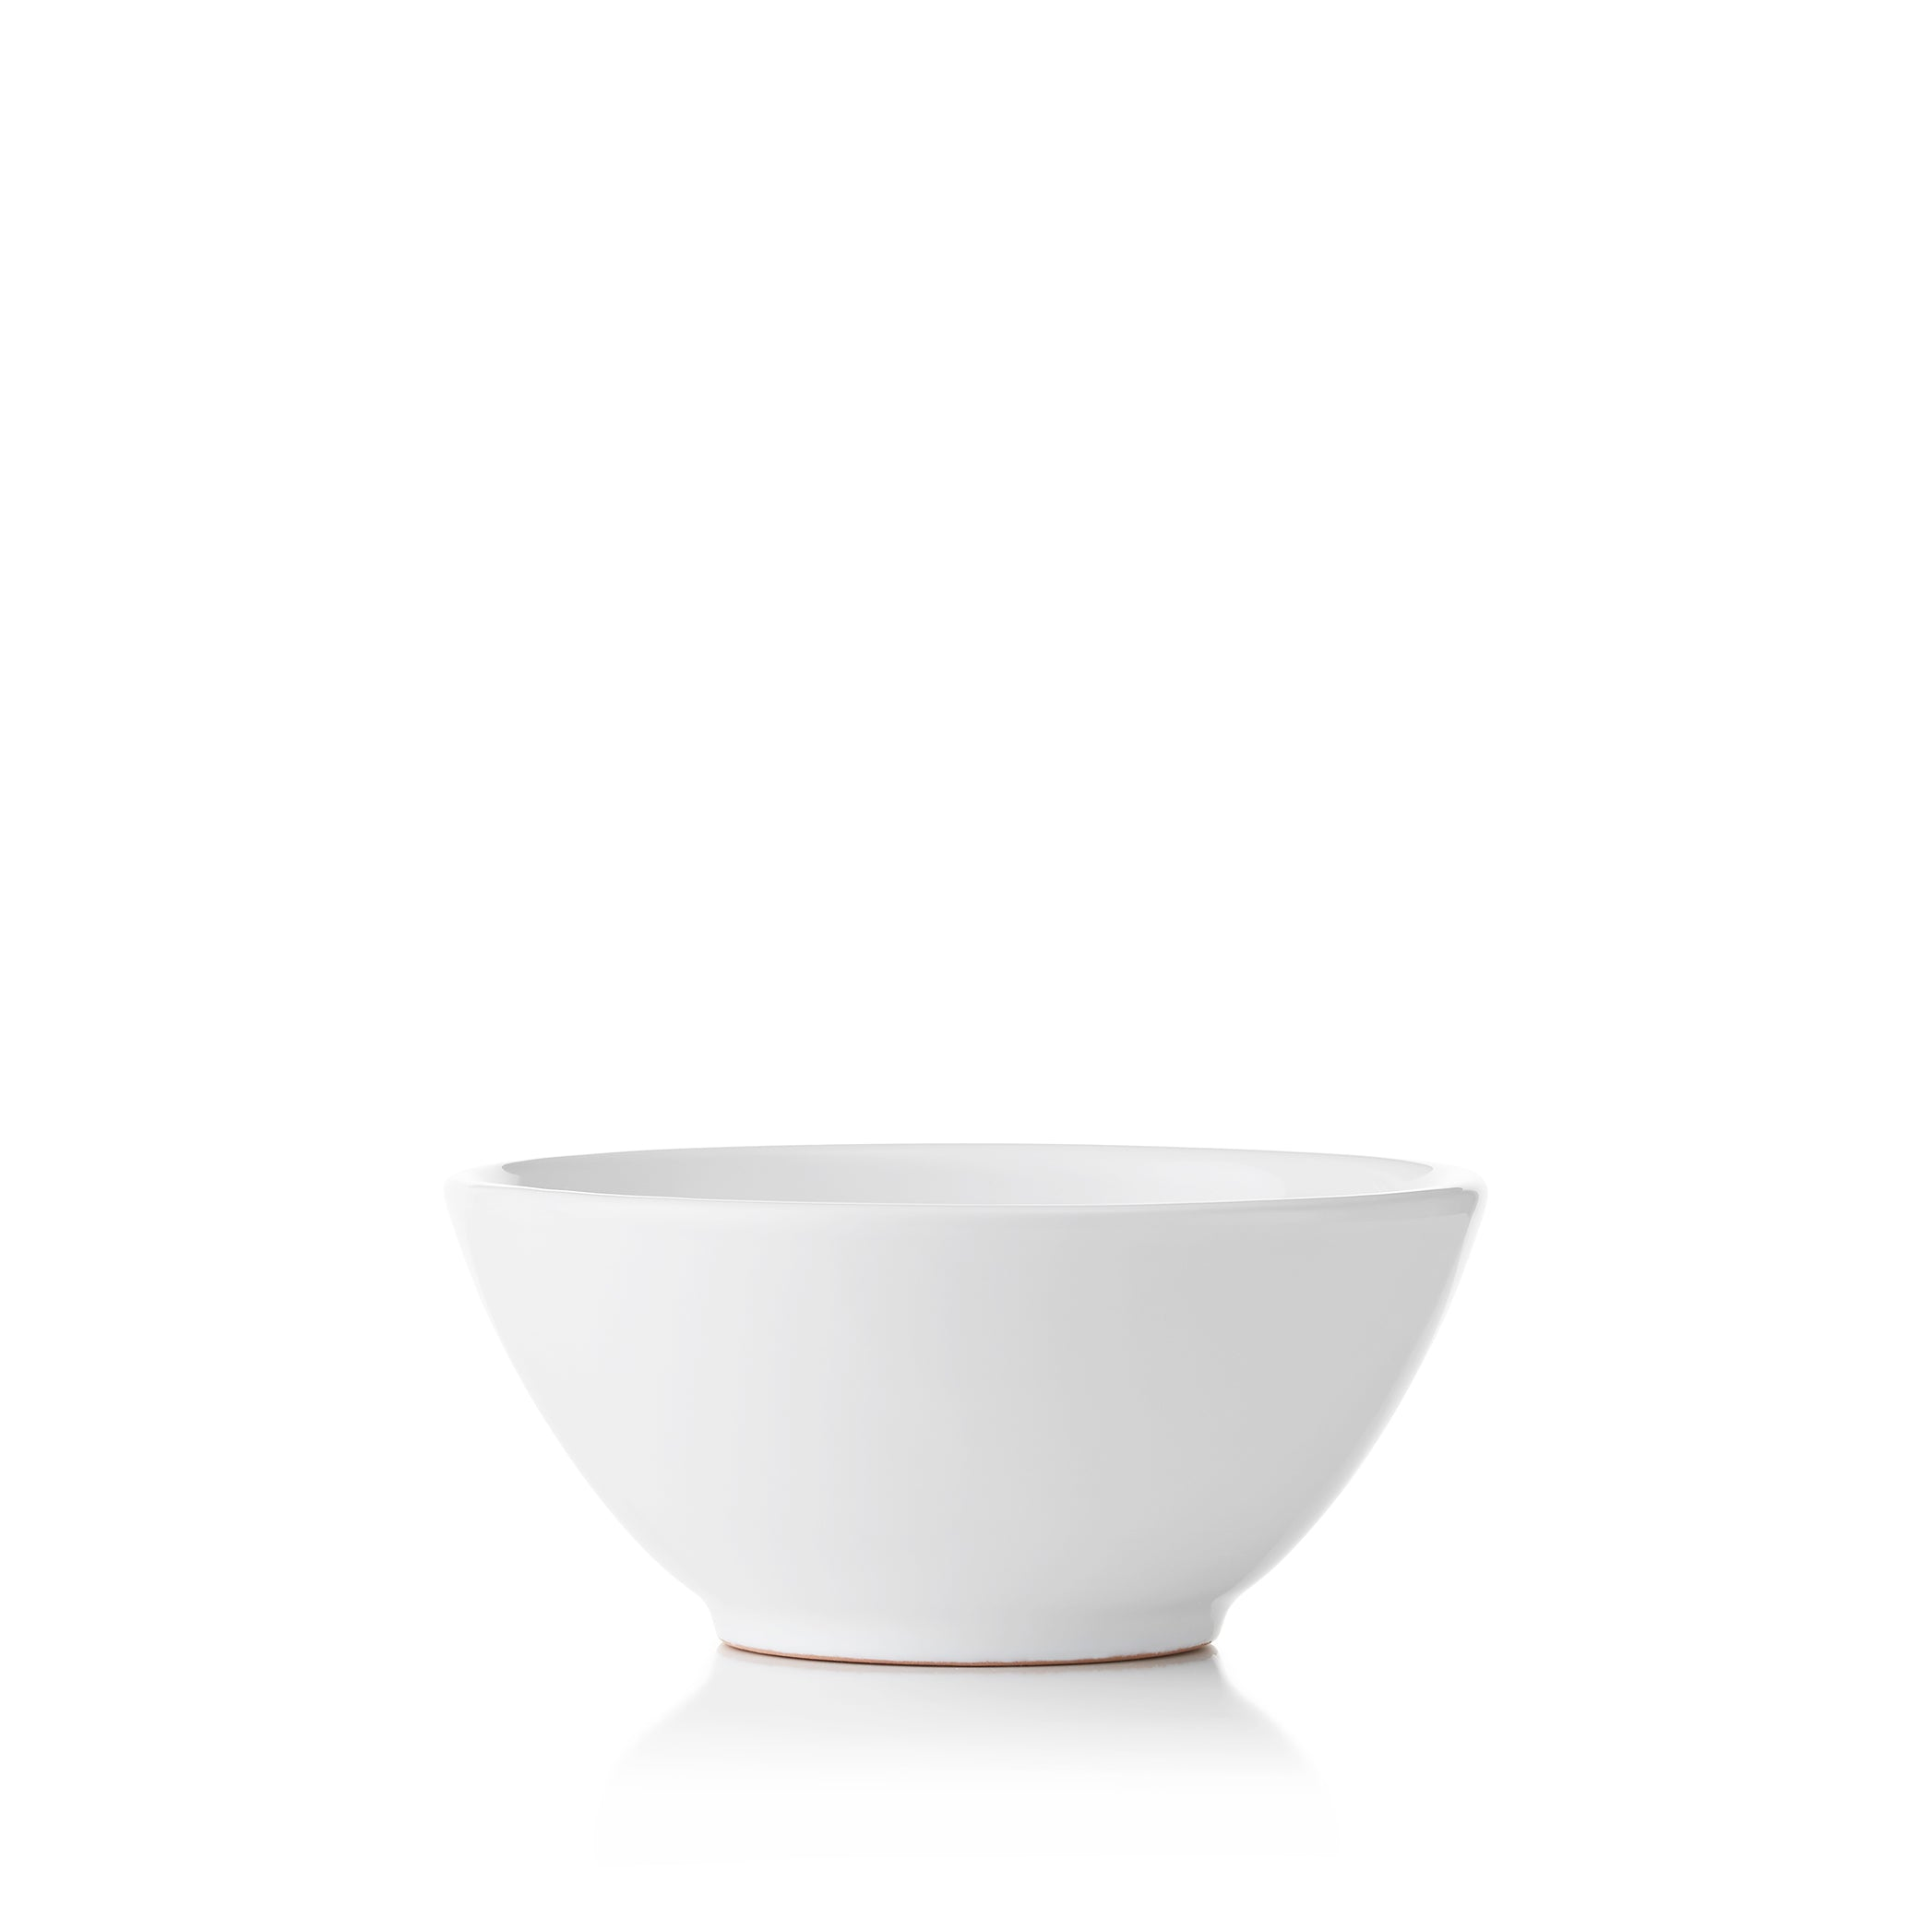 S&B Plain White Ceramic Cereal Bowl, 17.5cm